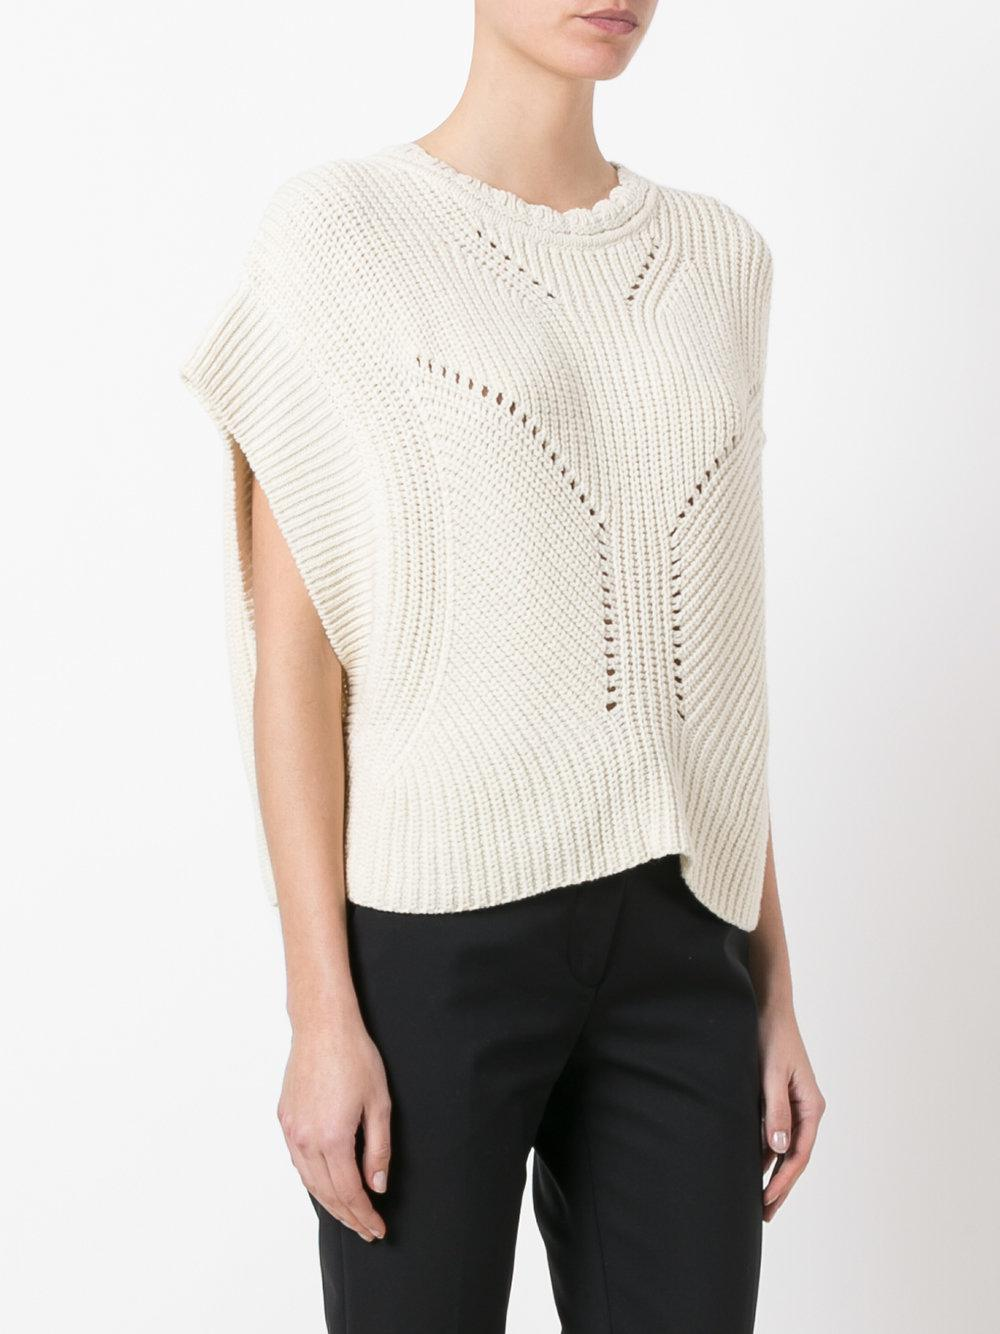 f6a266d8ee8b9a isabel-marant-nude-neutrals-Ribbed-Knitted-Top.jpeg